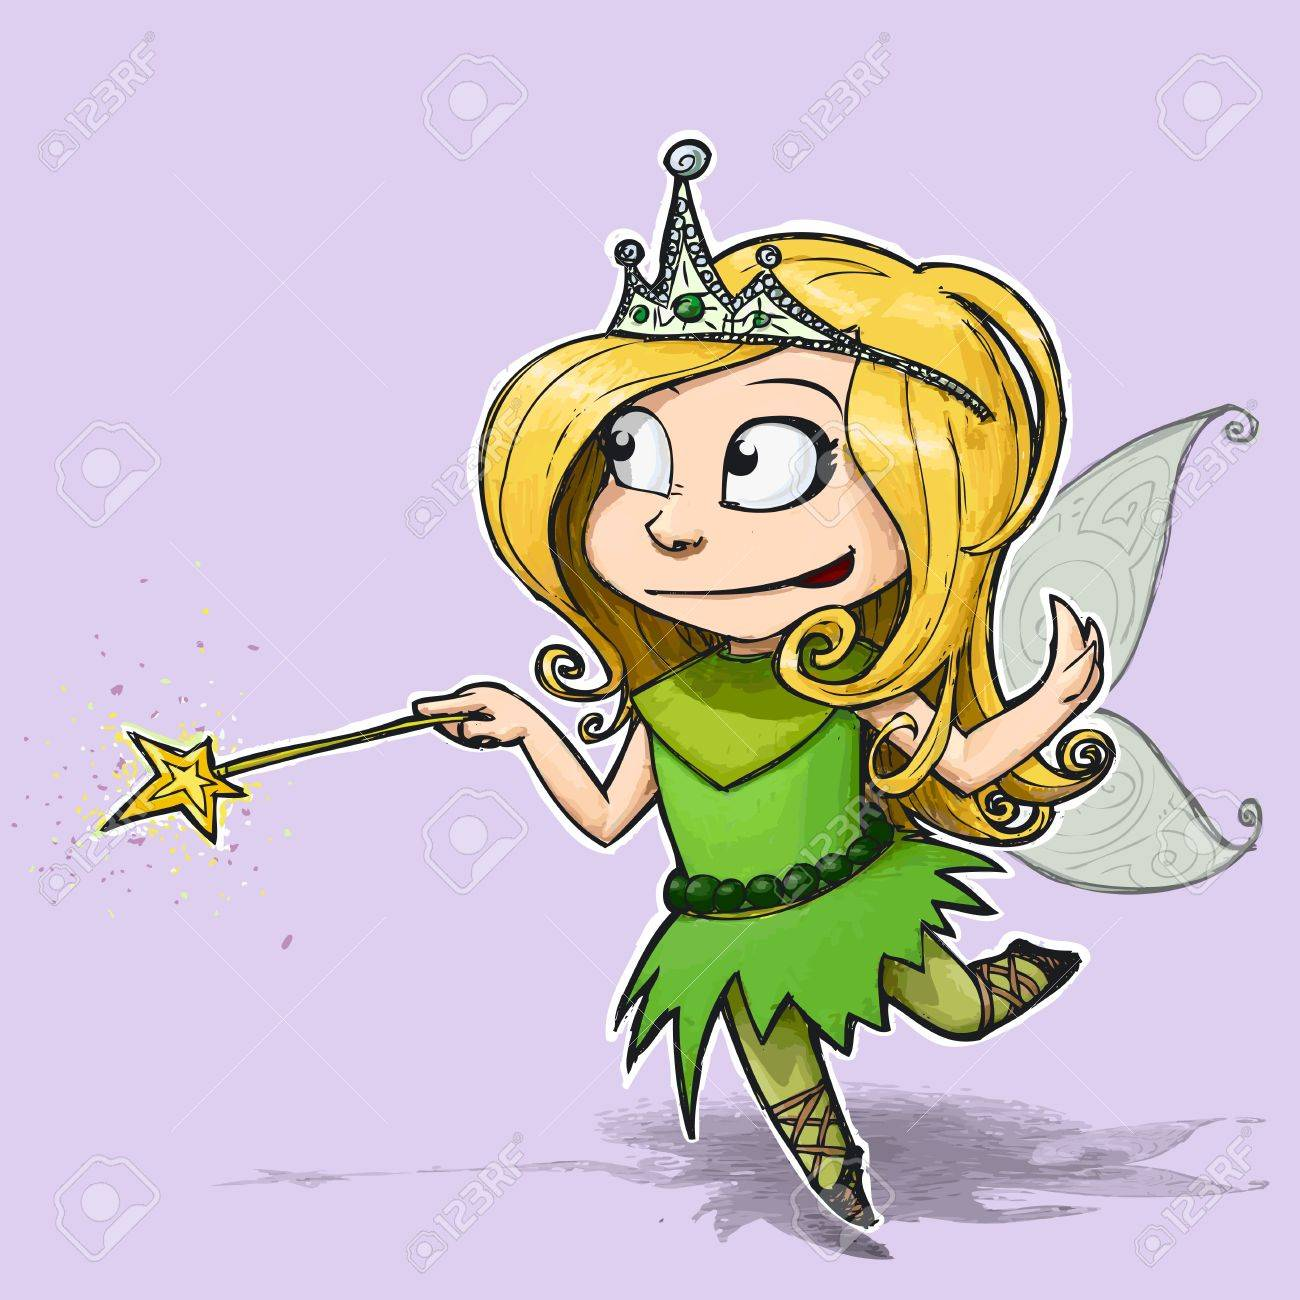 Cartoon Illustration of a girl dressed as a Fairy Stock Illustration - 20151547